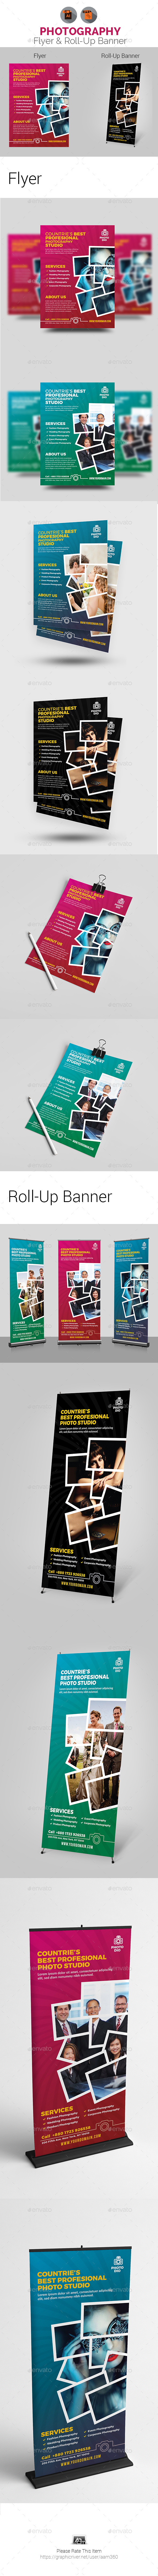 Photography Flyer & Roll-Up Banner - Print Templates